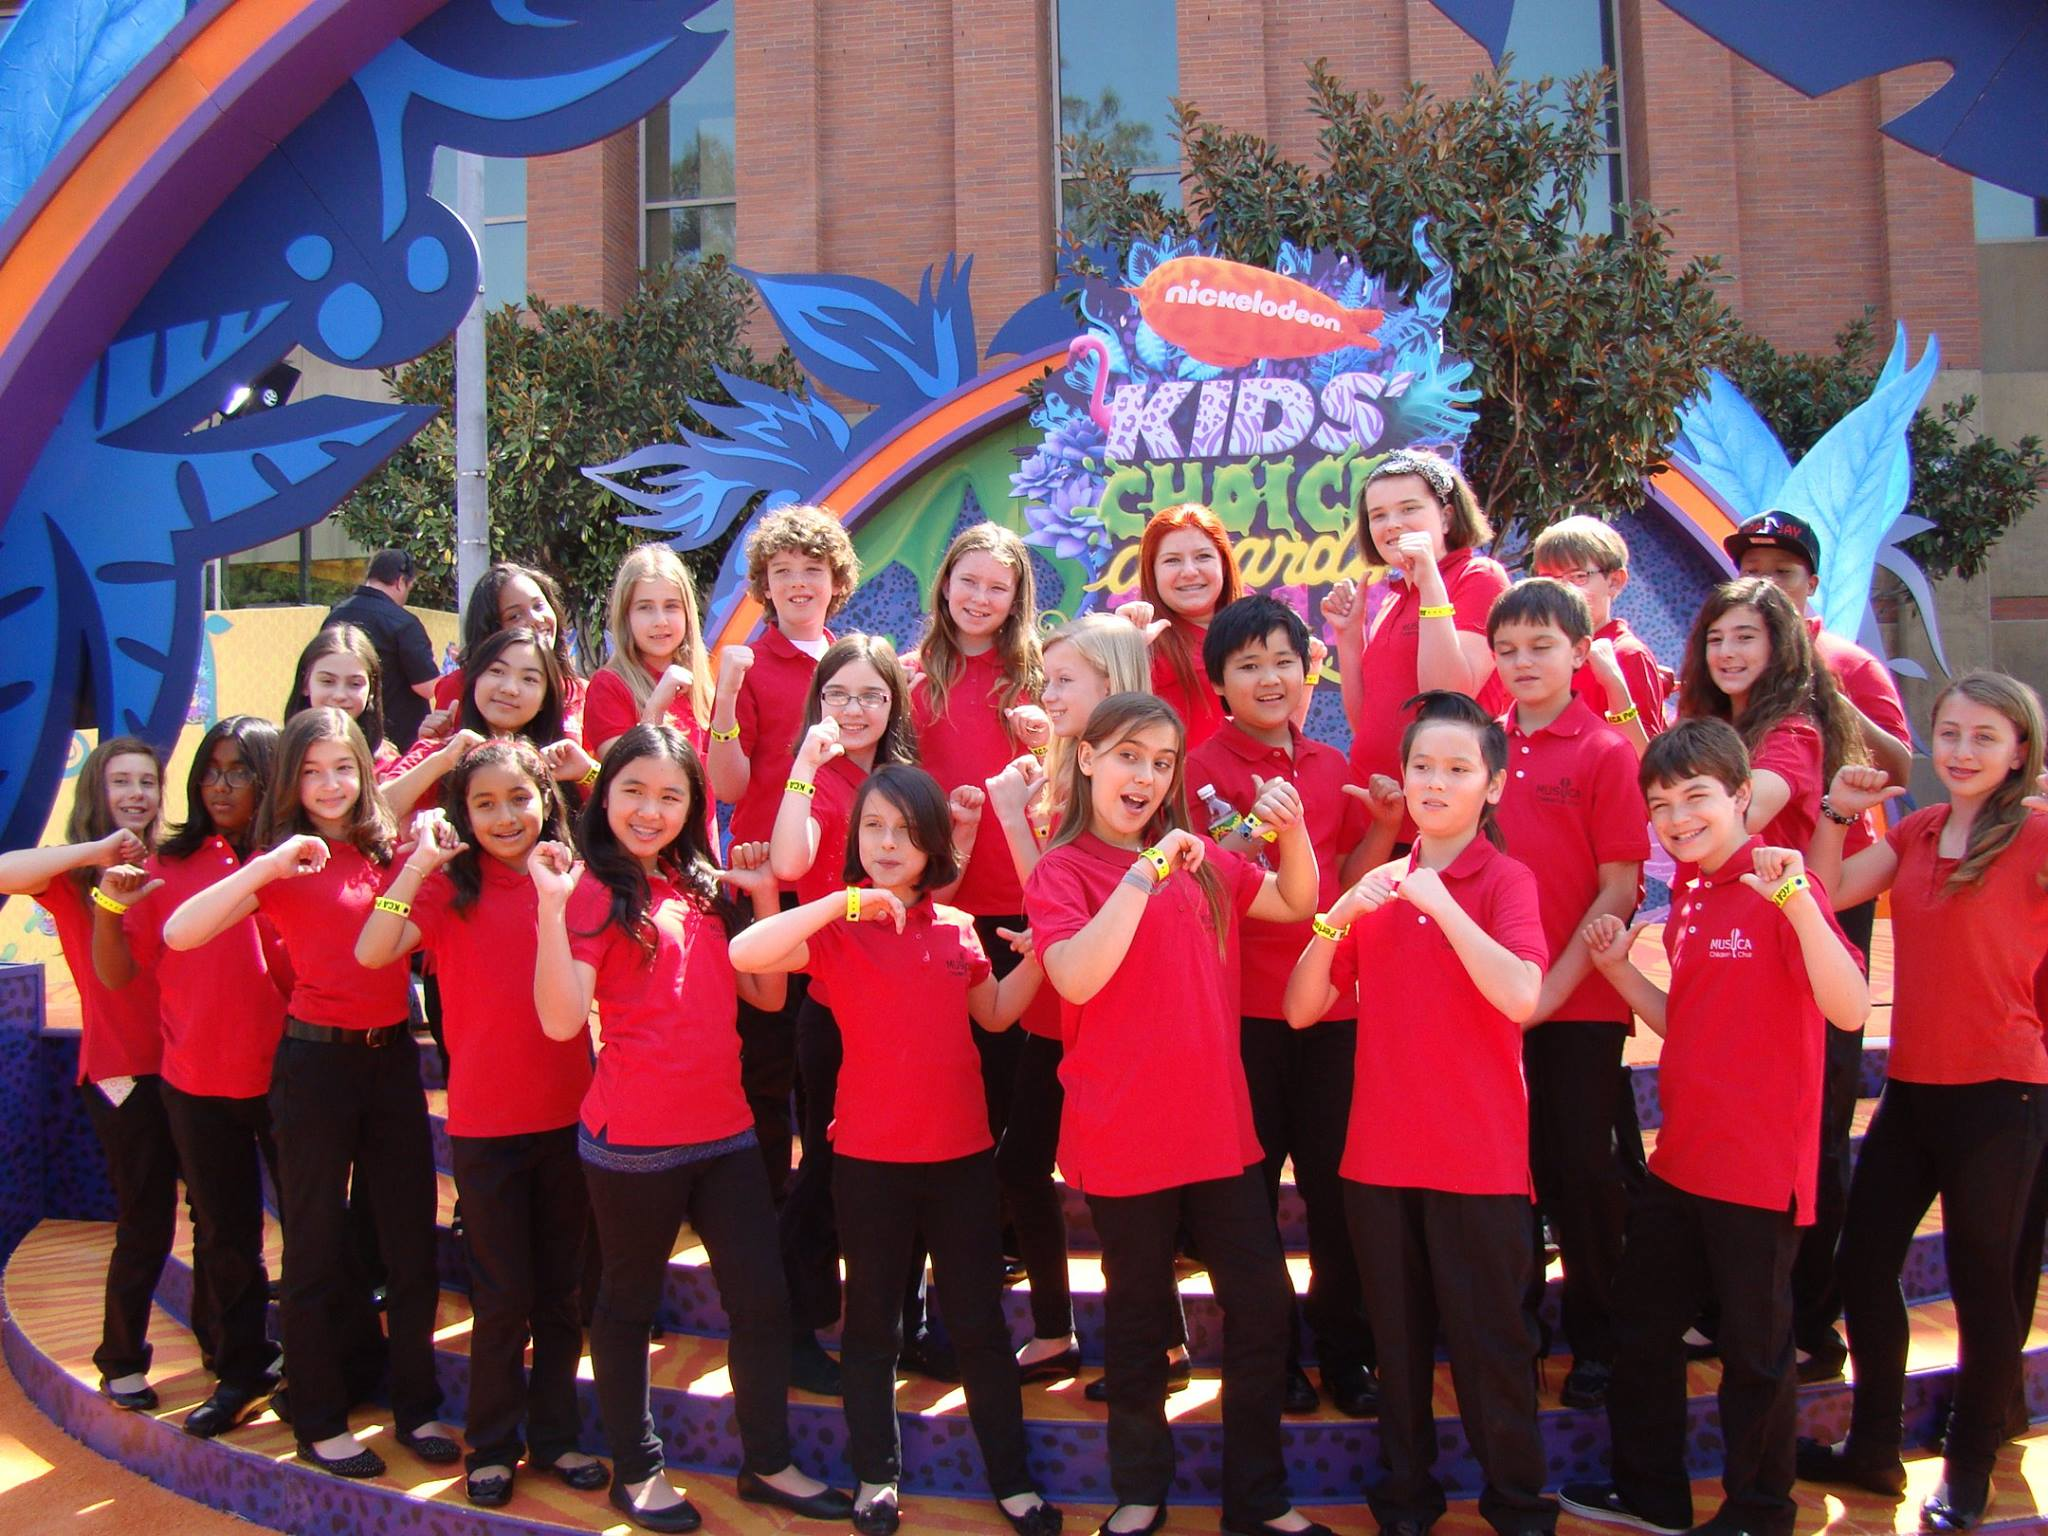 MUSYCA+Childrens+Choir+at+Nickelodeon+Kids+Choice+Awards